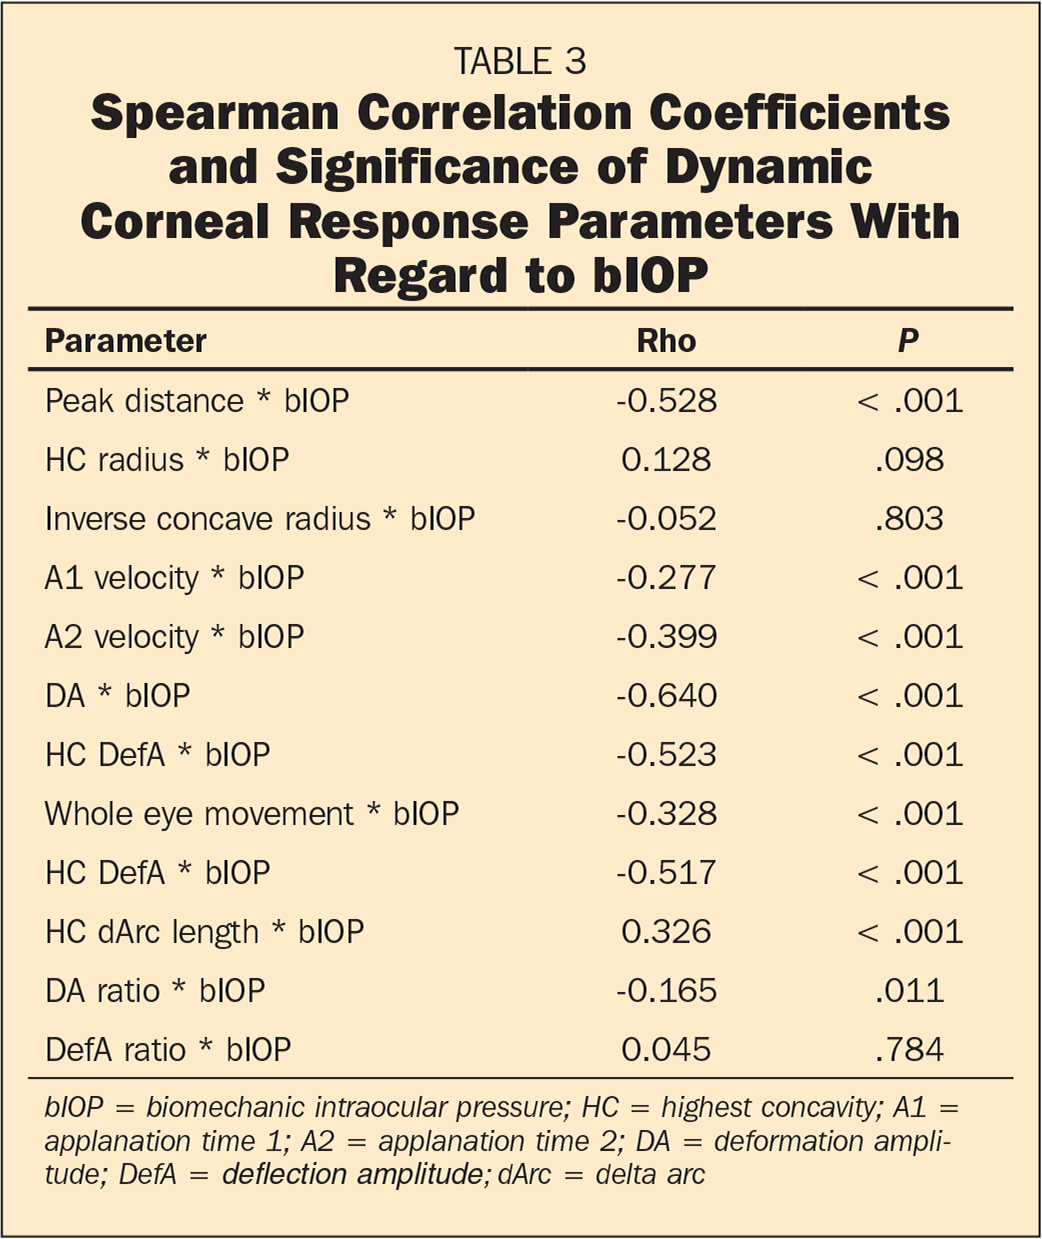 �A;Spearman Correlation Coefficients and Significance of Dynamic Corneal Response Parameters With Regard to bIOP